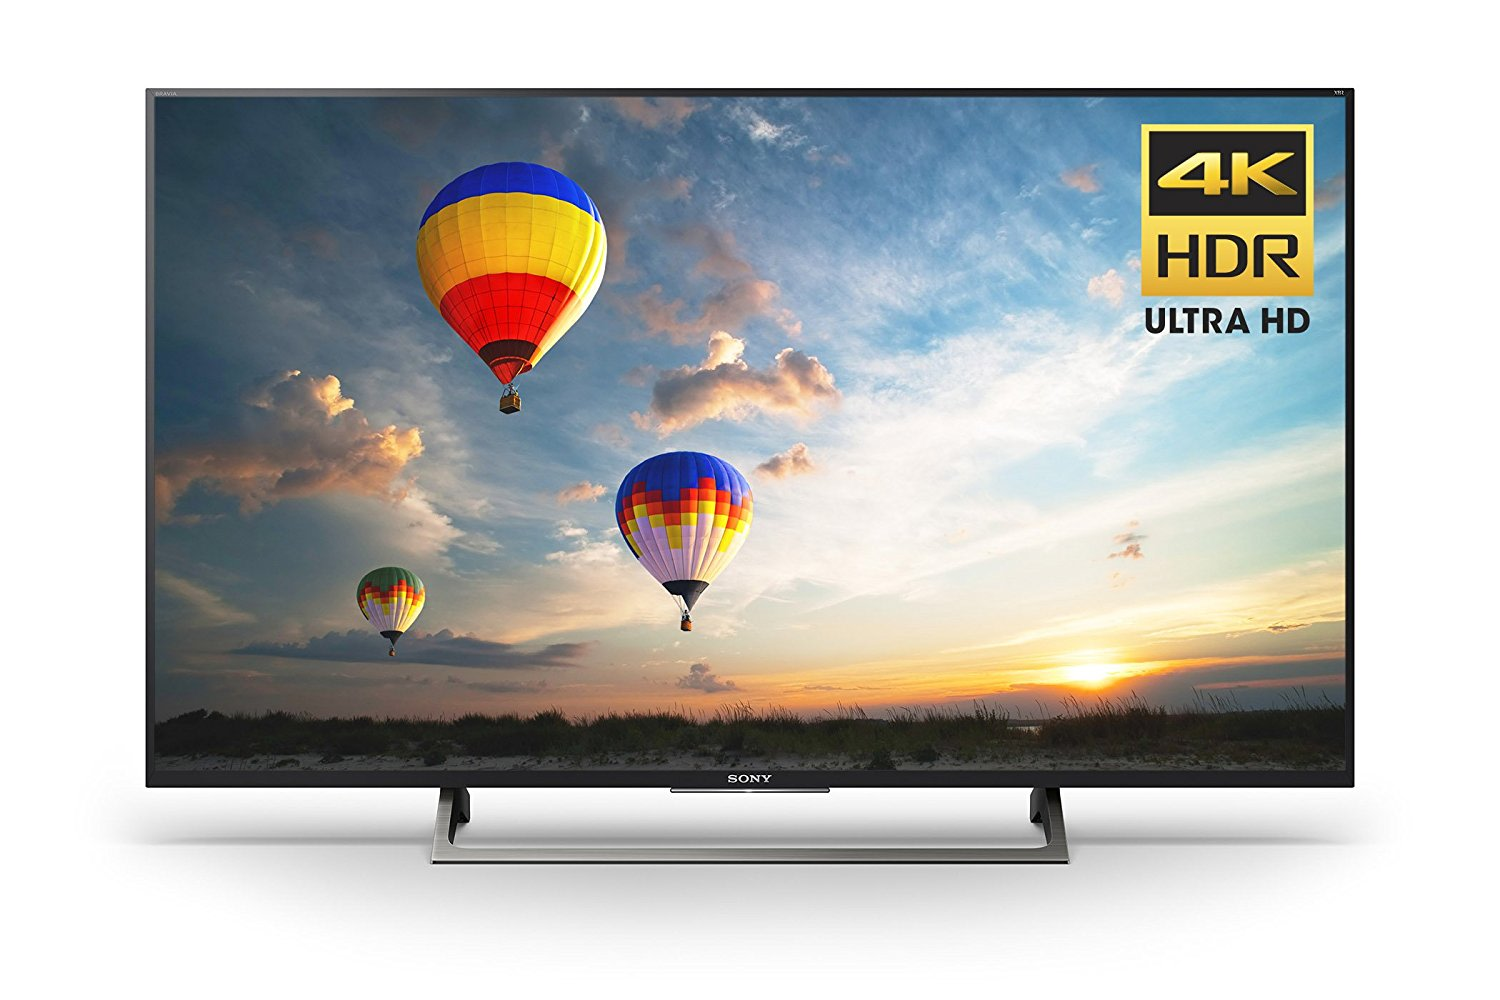 An image of Sony XBR43X800E 43-Inch HDR Flat Screen 4K LED 60Hz Smart TV with Sony Motionflow XR 240